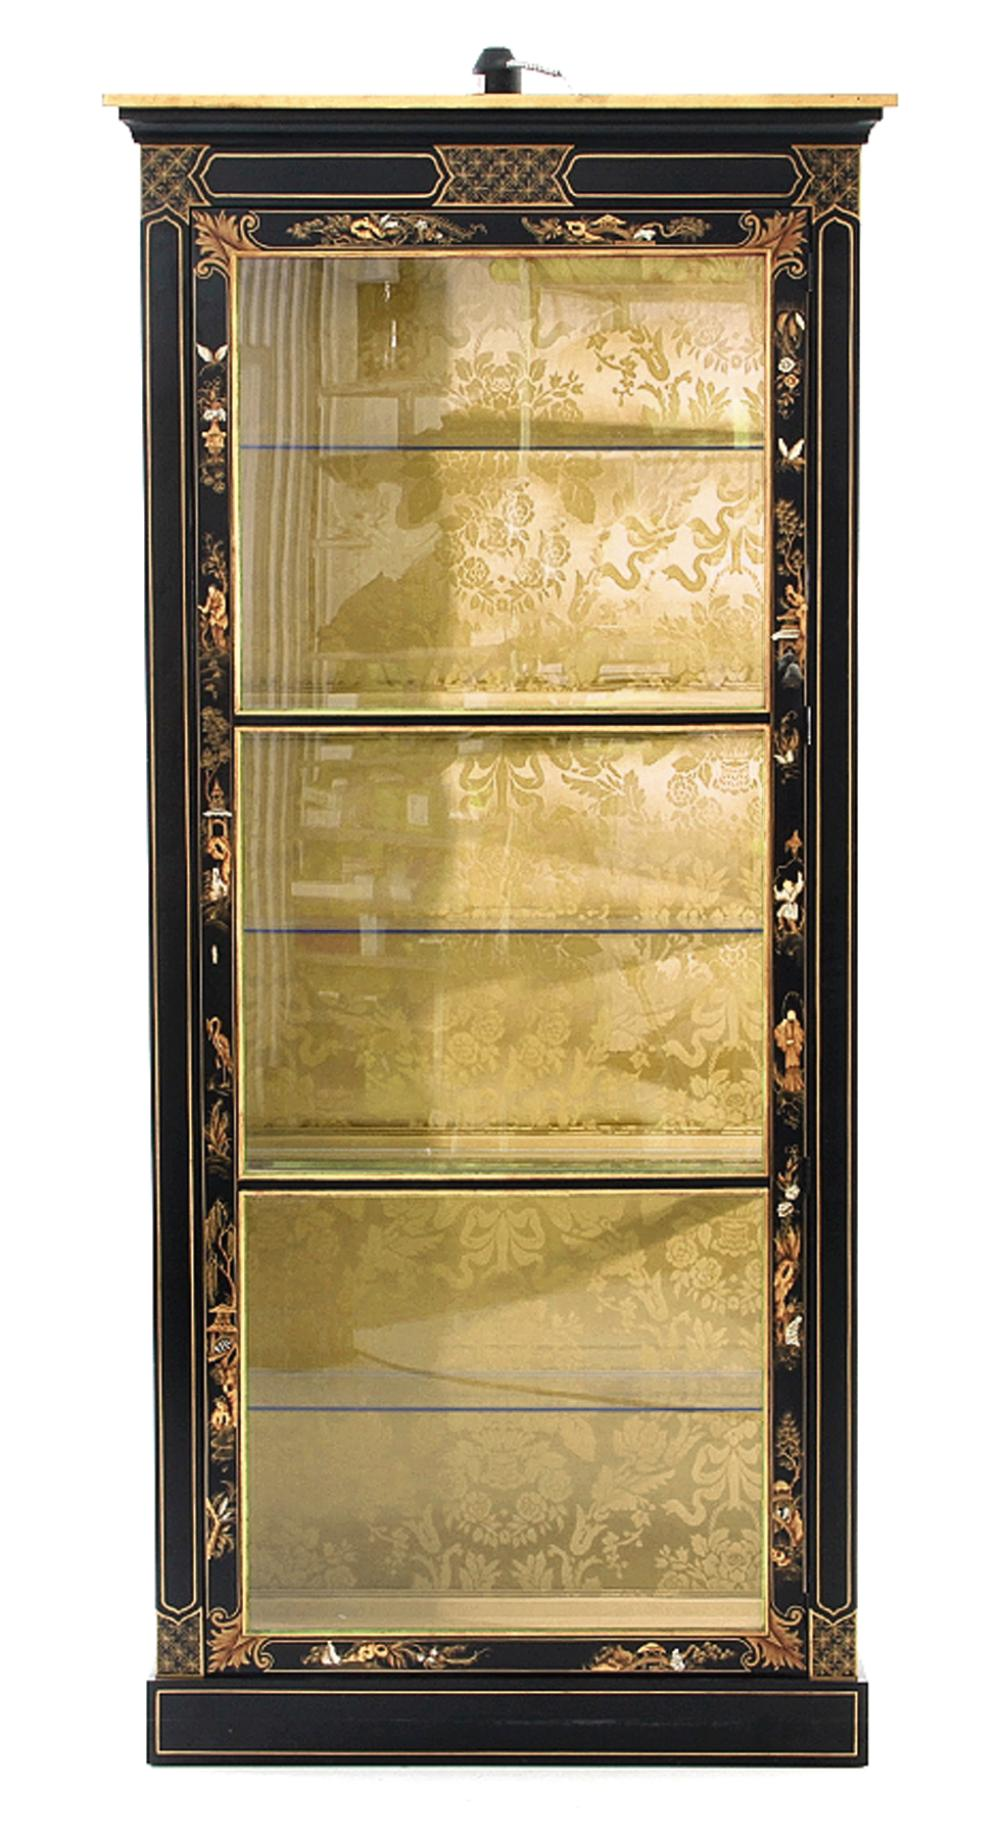 Chinoiserie-decorated curio cabinet, possibly Baker Furniture Co.